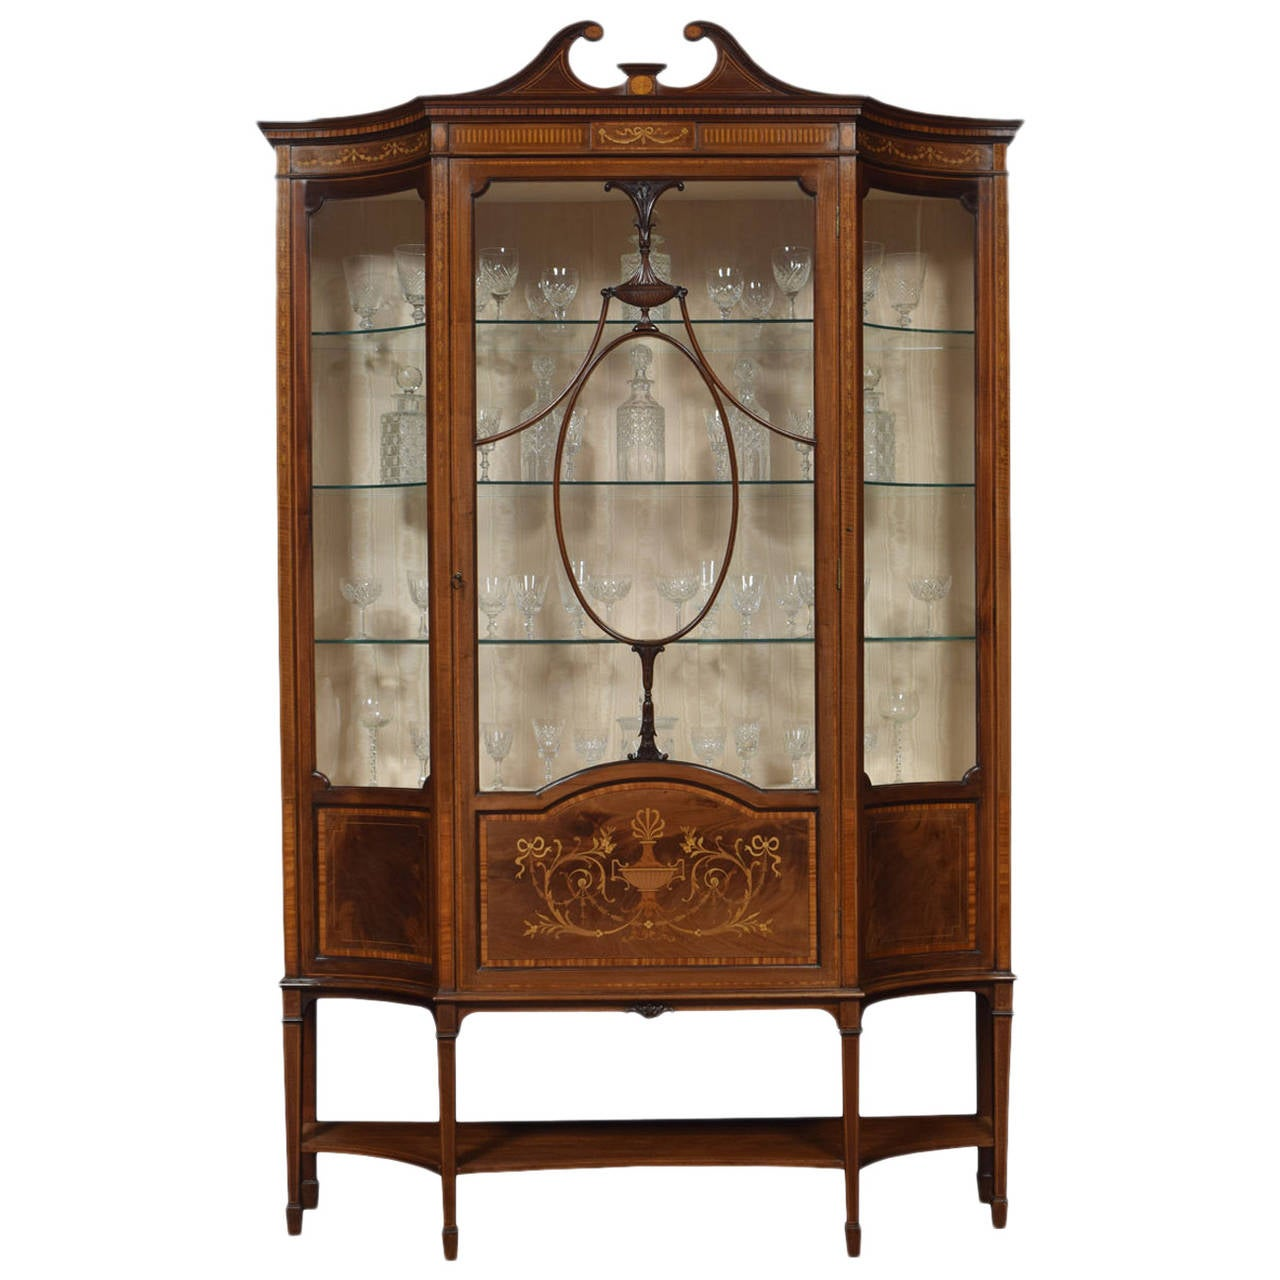 Late 19th Century Mahogany Sheraton Revival Inlaid Display Cabinet 1